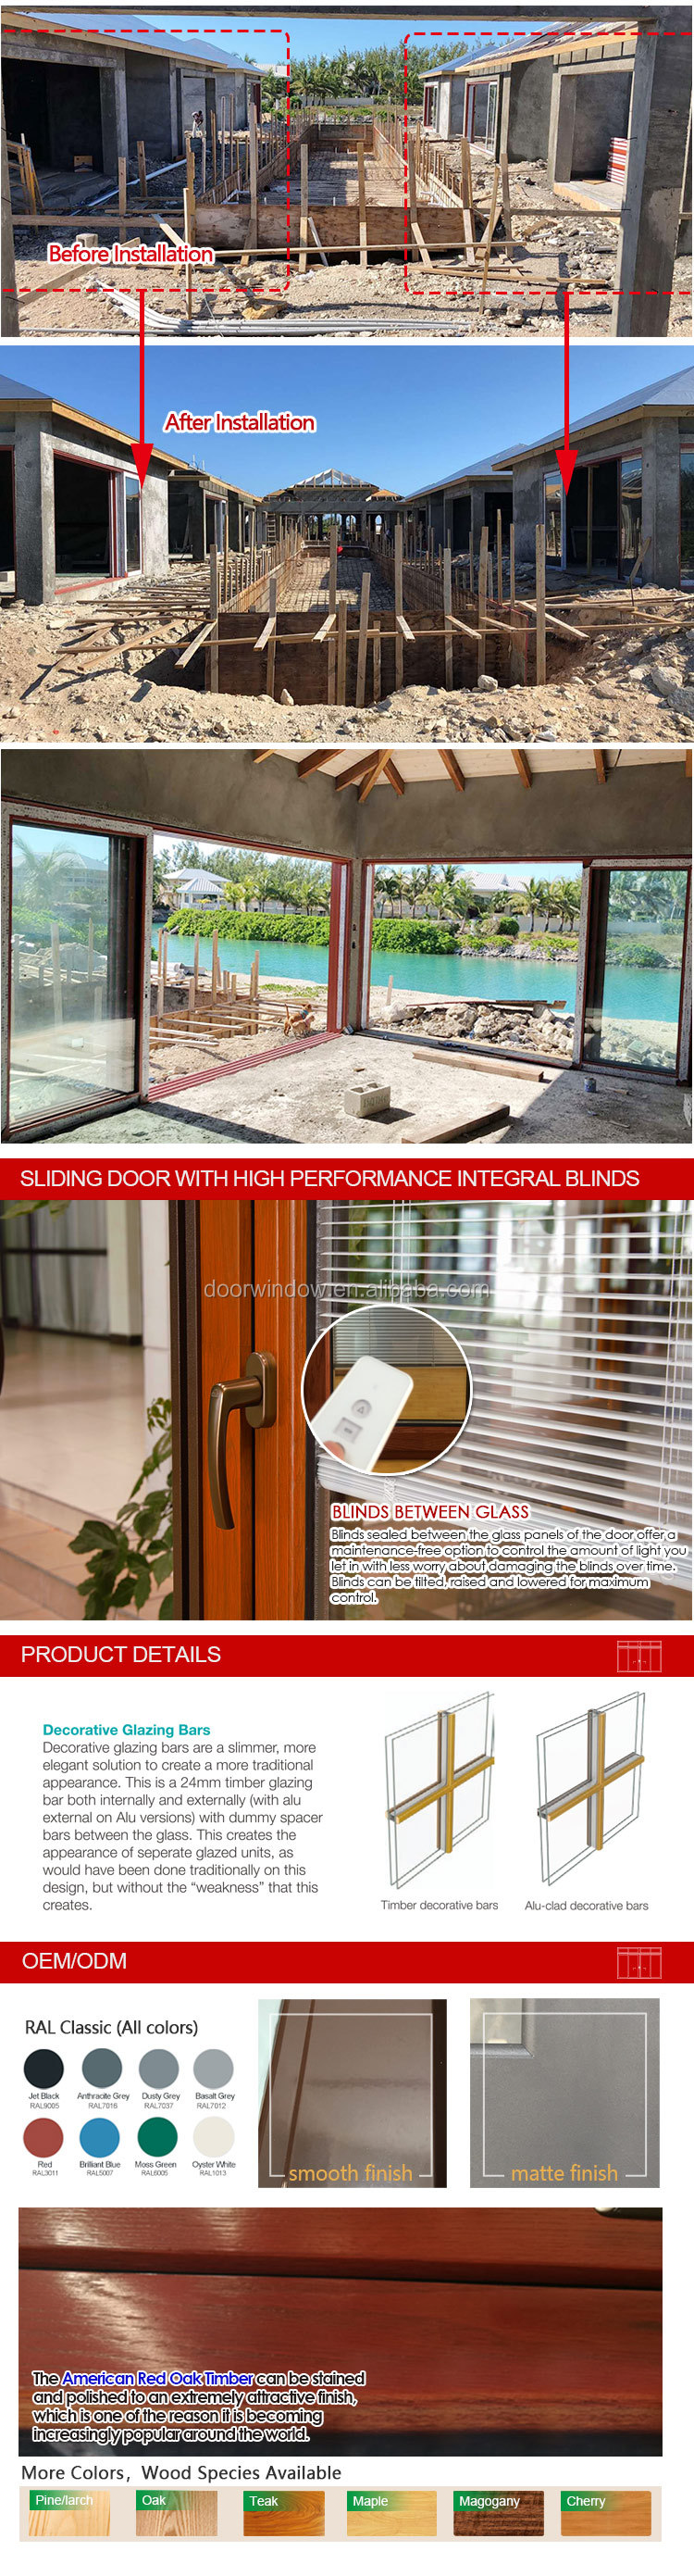 Timber and aluminum clad Double glazed sliding windows and doors solid wood slider door